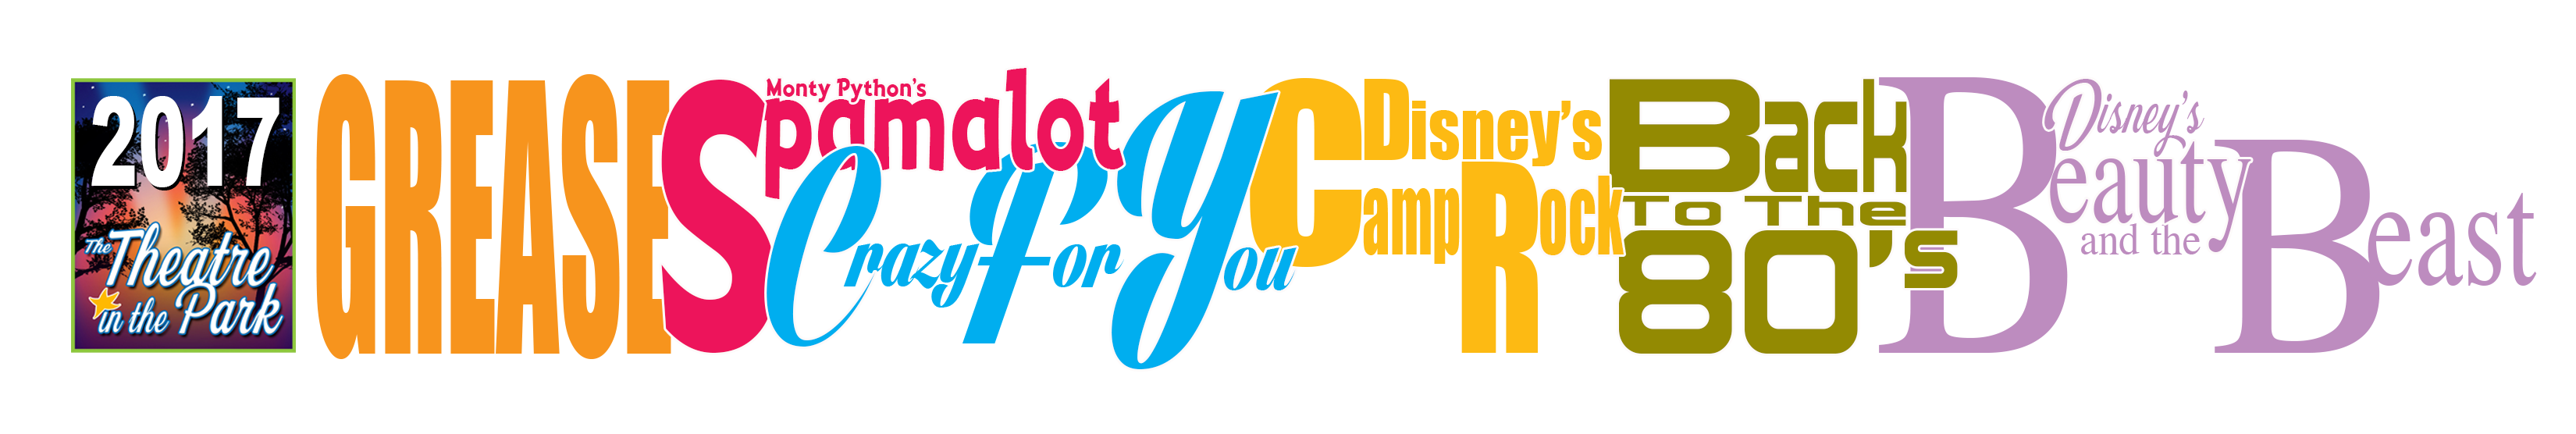 image with title treatments of 2017 season, including GREASE, SPAMALOT, CRAZY FOR YOU, DISNEY'S CAMP ROCK, BACK TO THE 80S AND DISNEY'S BEAUTY AND THE BEAST